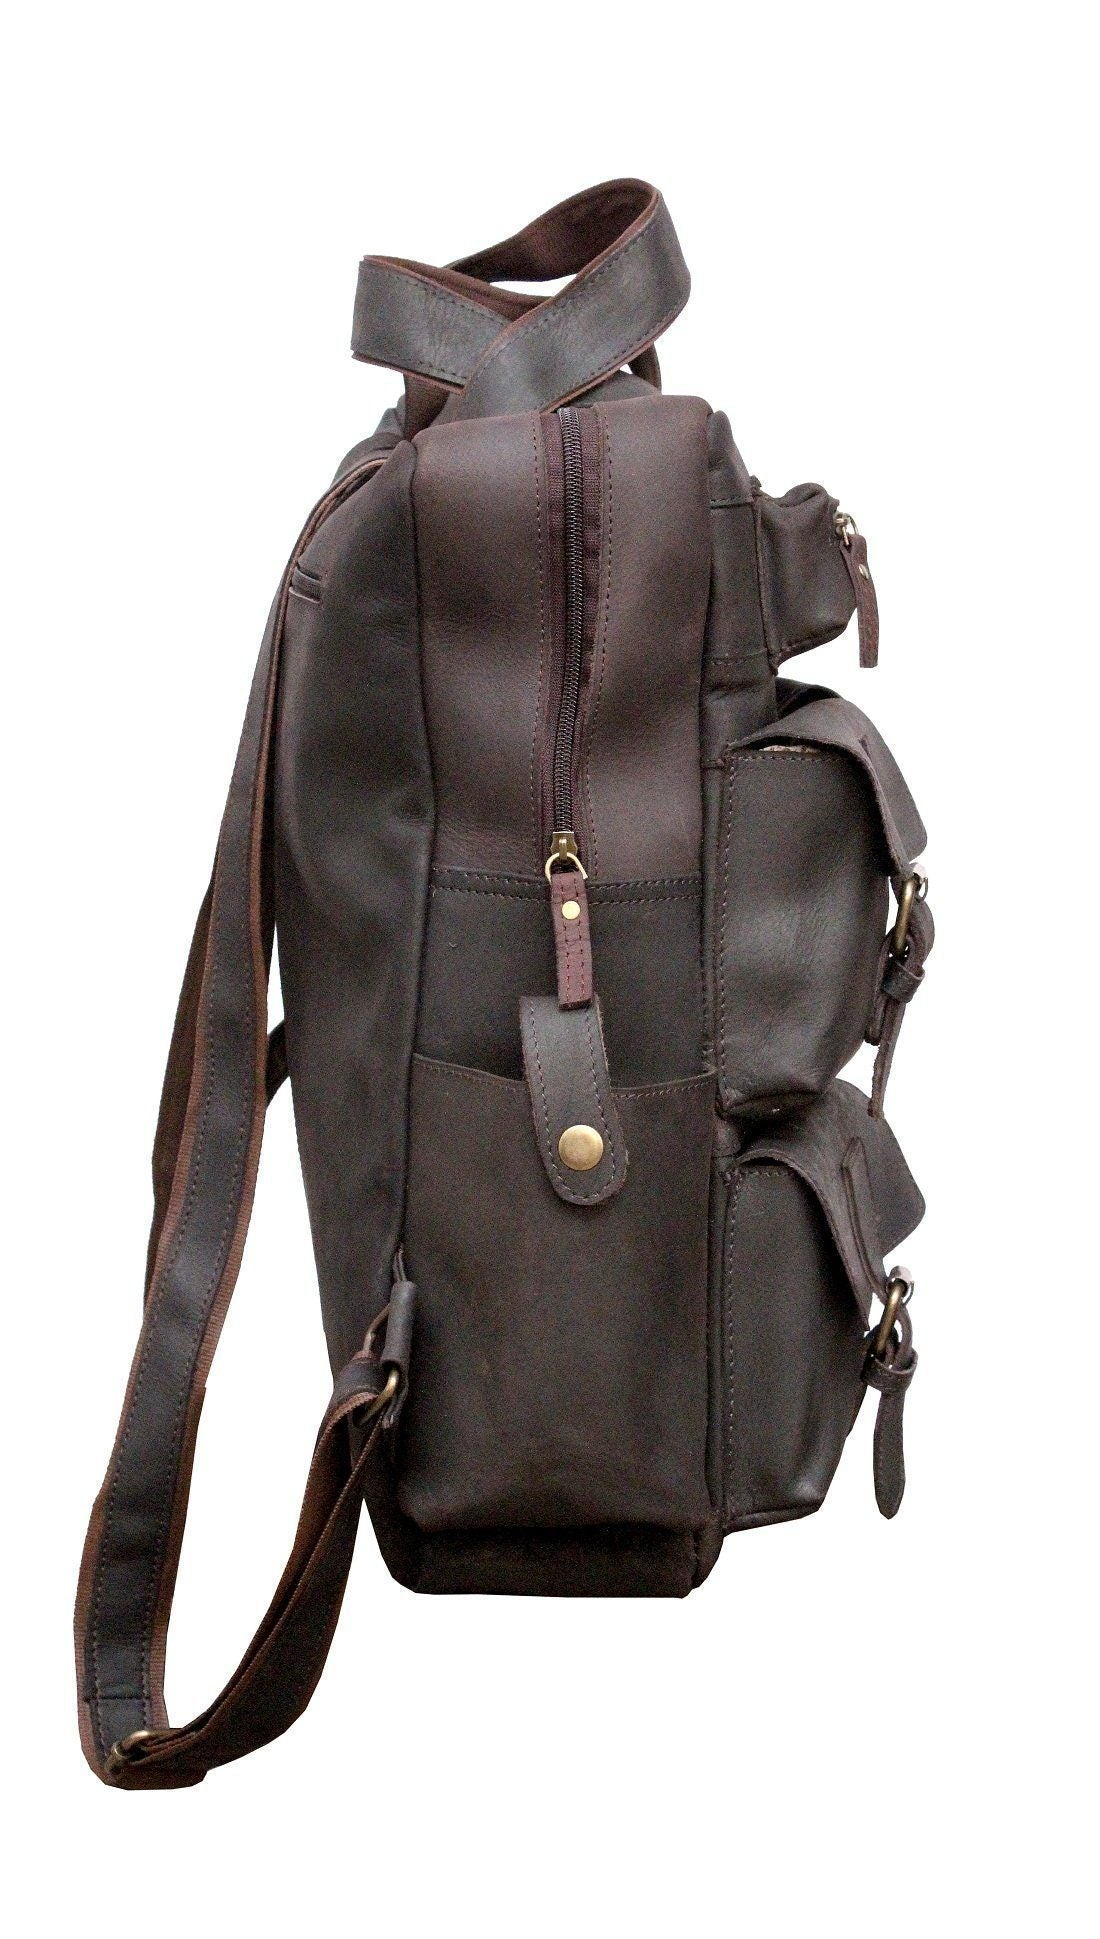 Leather - IN-INDIA Hot Selling 4 Pocket Buffalo Leather Large Vintage Rustic Look Messenger Bagpack - Fits Laptop Upto 15.6 Inches